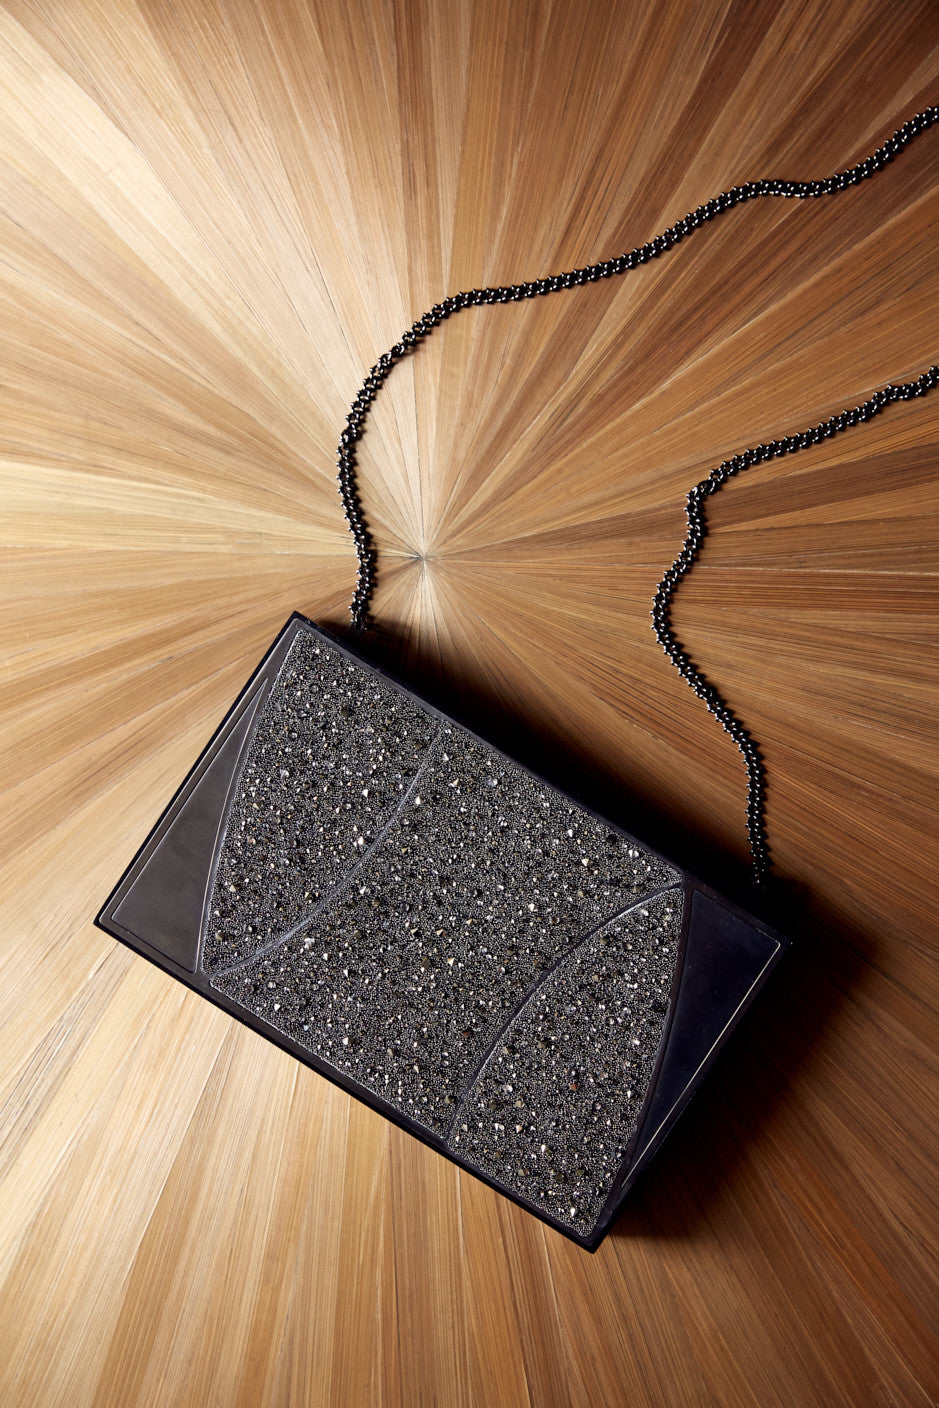 Khirma New York Unique Luxury Designer Swarovski Crystal Box Clutch Purse. Removable chain for the perfect evening clutch. Mirror Gunmetal and Silver